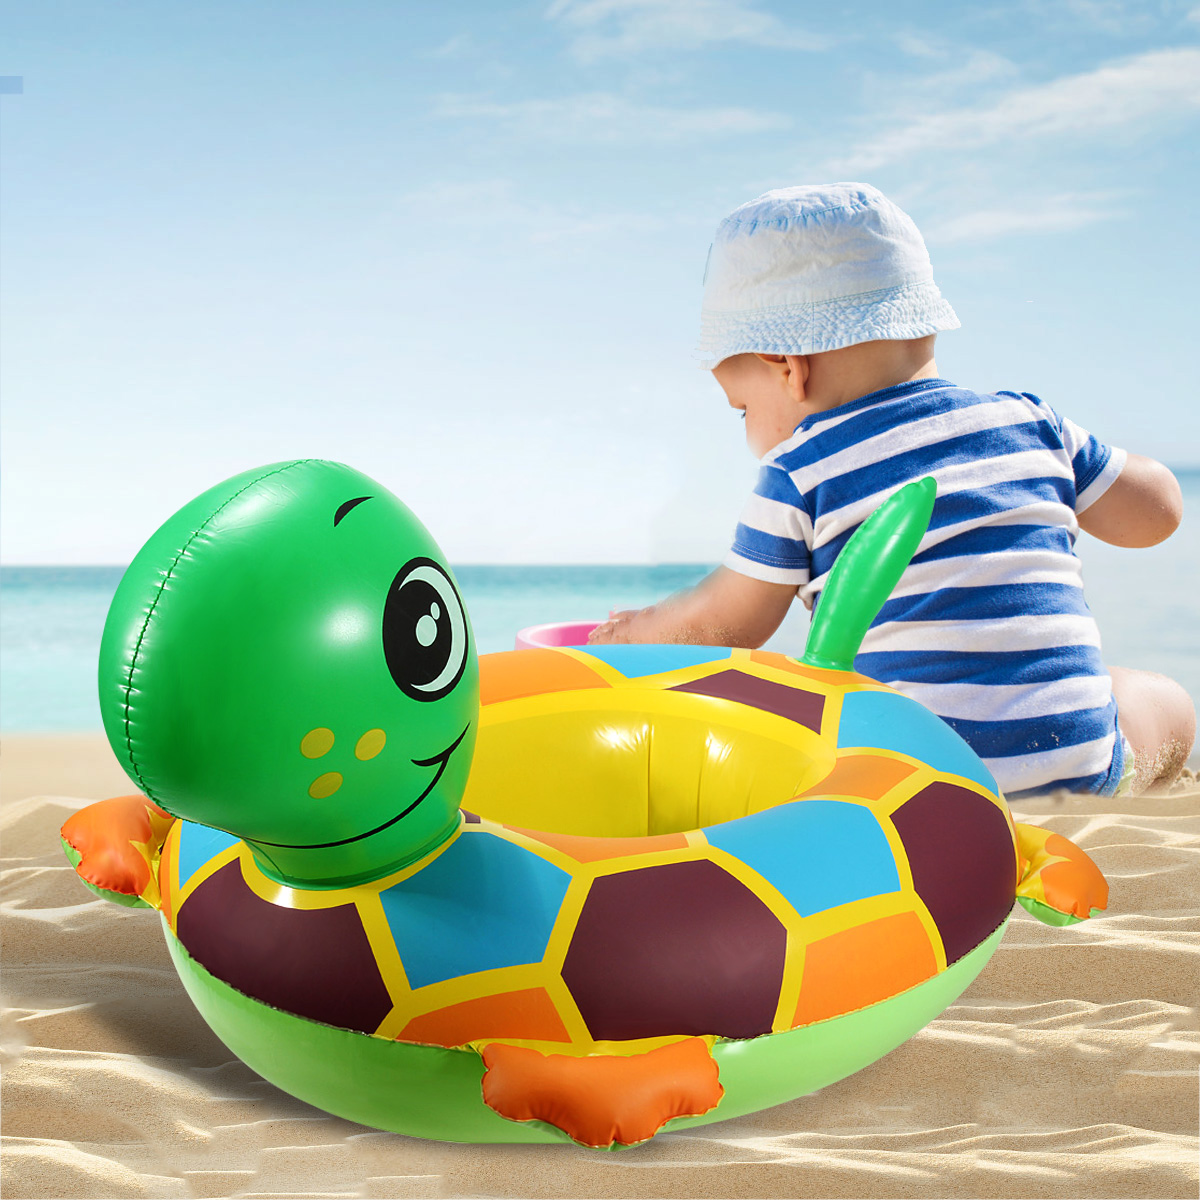 baby blow up ring chair chocolate dining covers cute tortoise inflatable swim pool raft seat float water fun toy gift outdoor play pvc walmart com